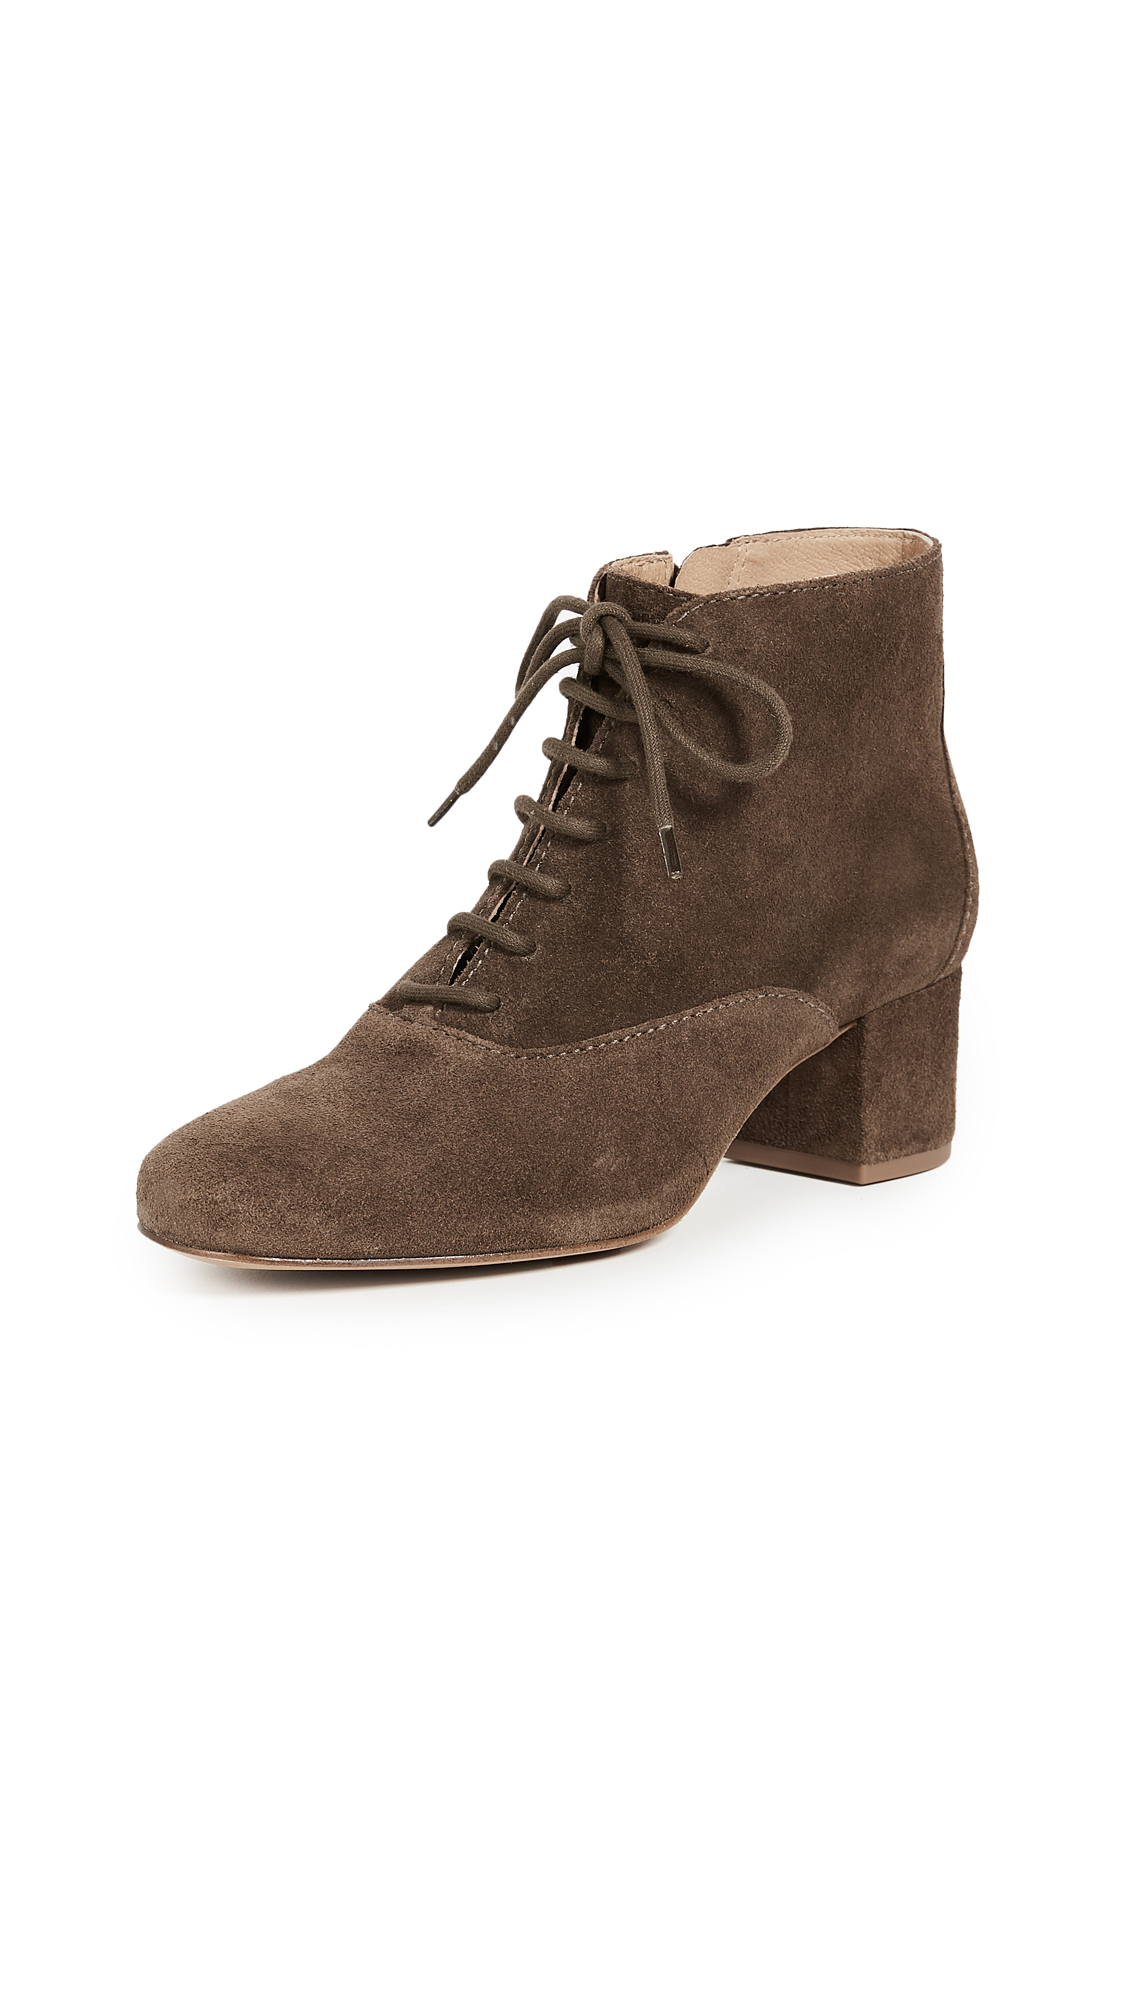 Madewell Macey Lace Up Boots - Weathered Maple